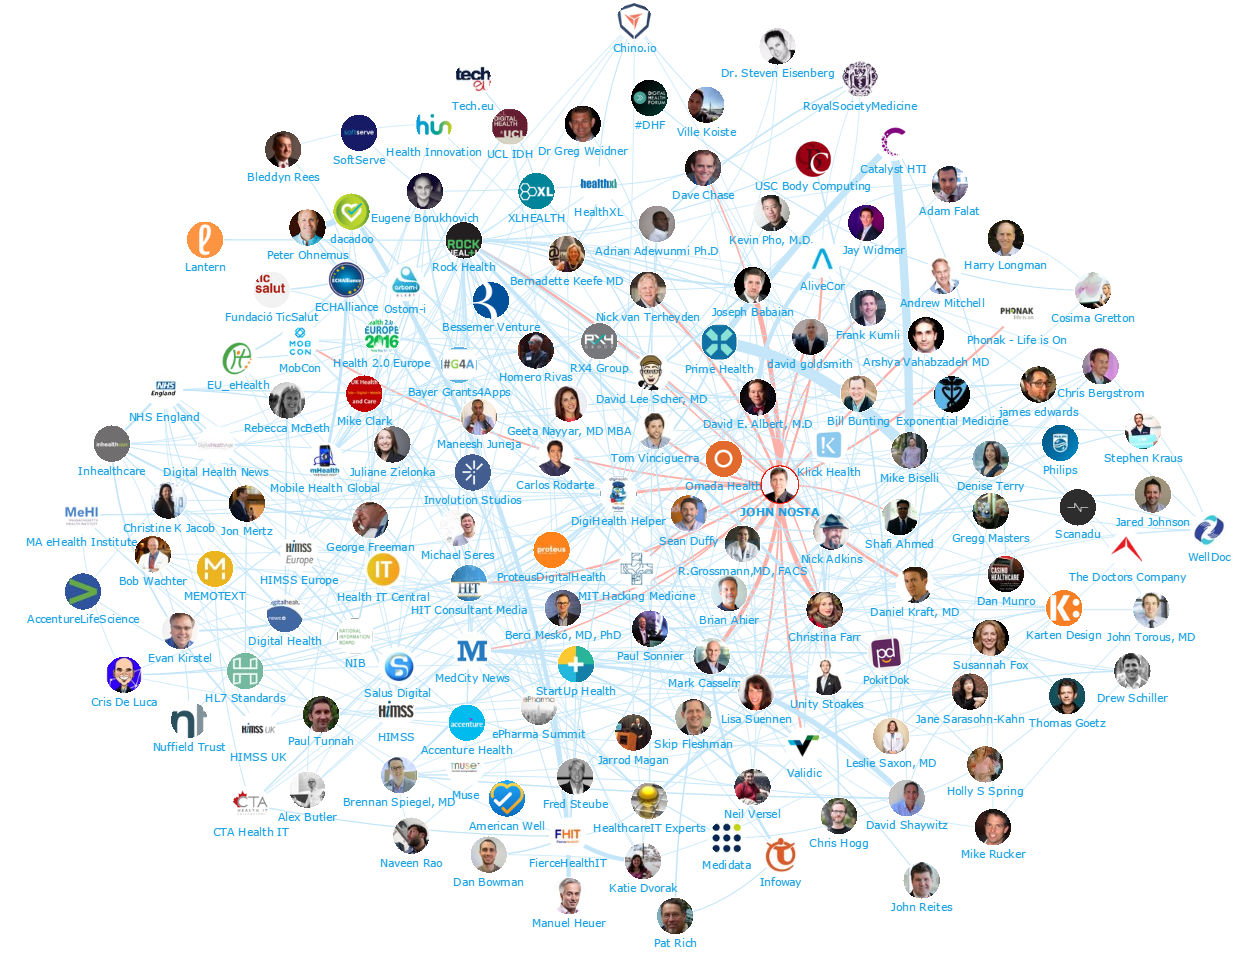 Onalytica - Digital Health 2016 Top 100 Influencers and Brands - John Nosta